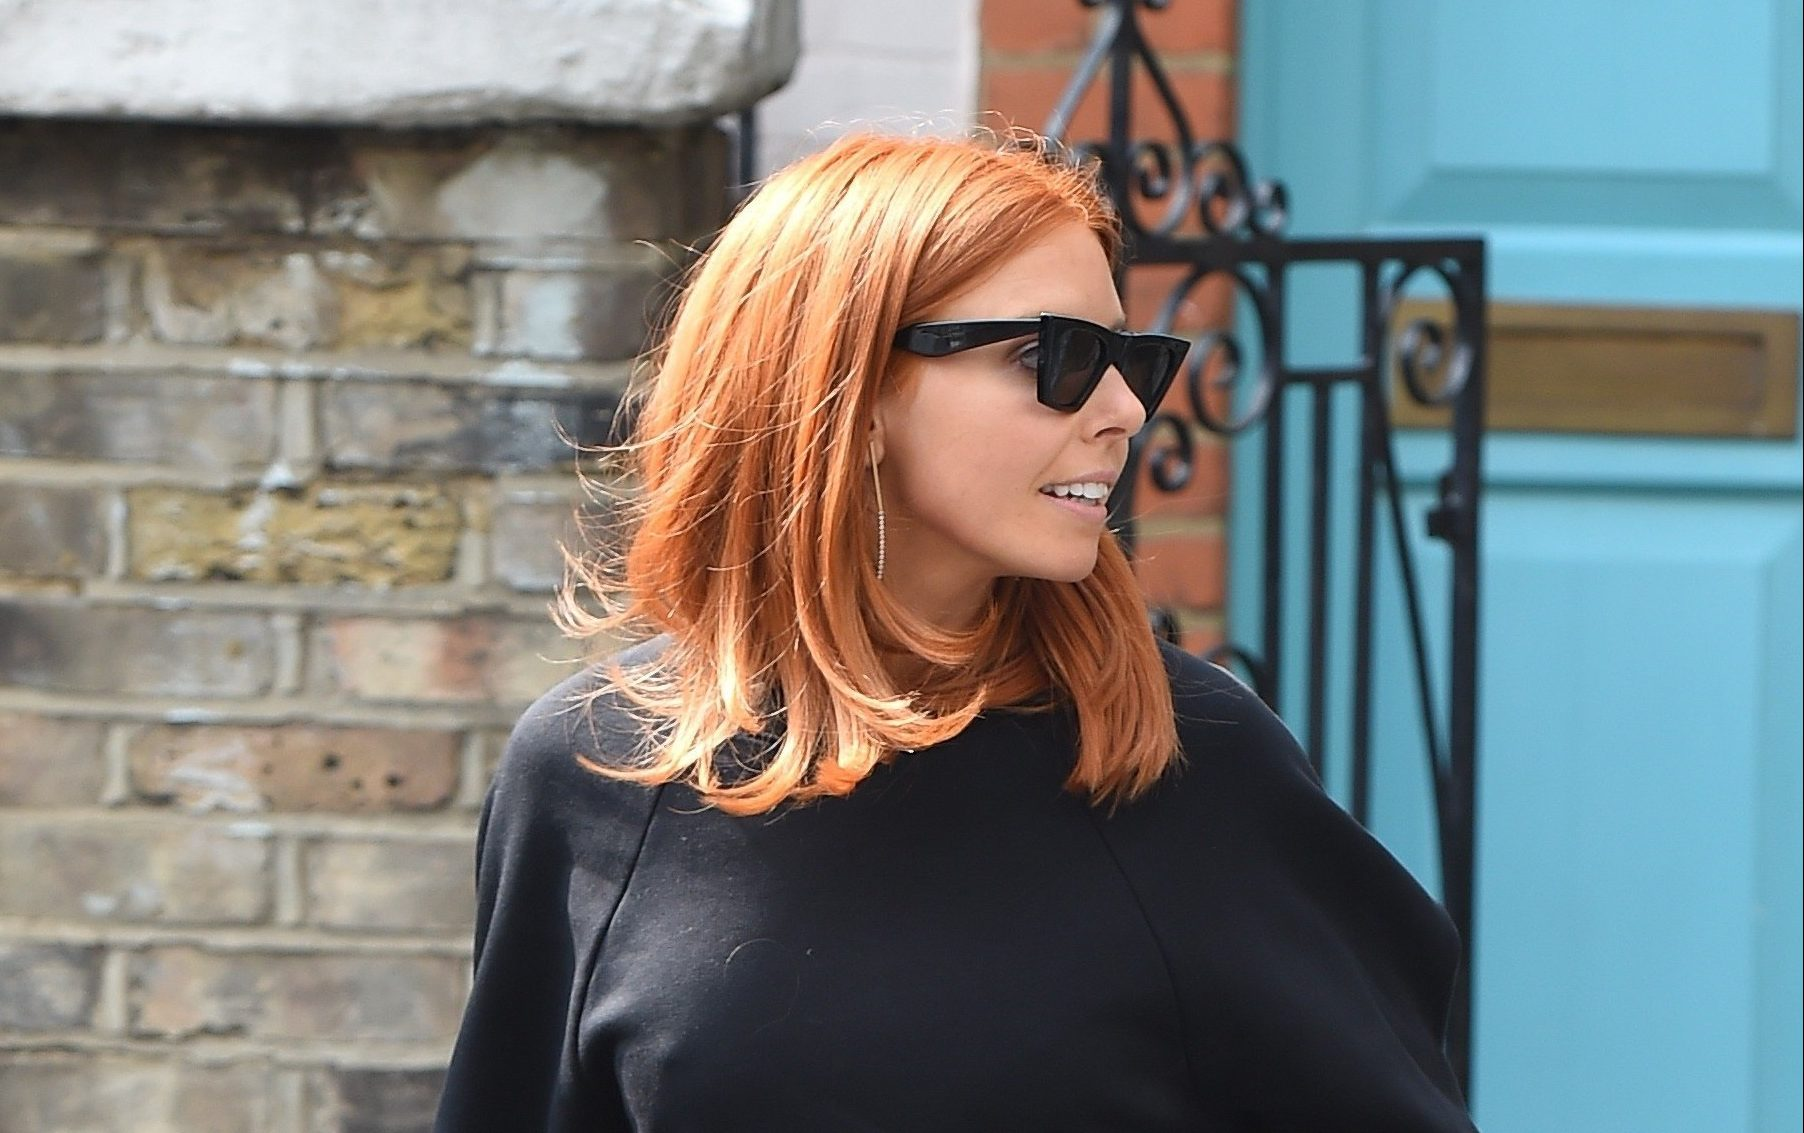 Strictly Come Dancing's Stacey Dooley is all smiles after 'split' from boyfriend